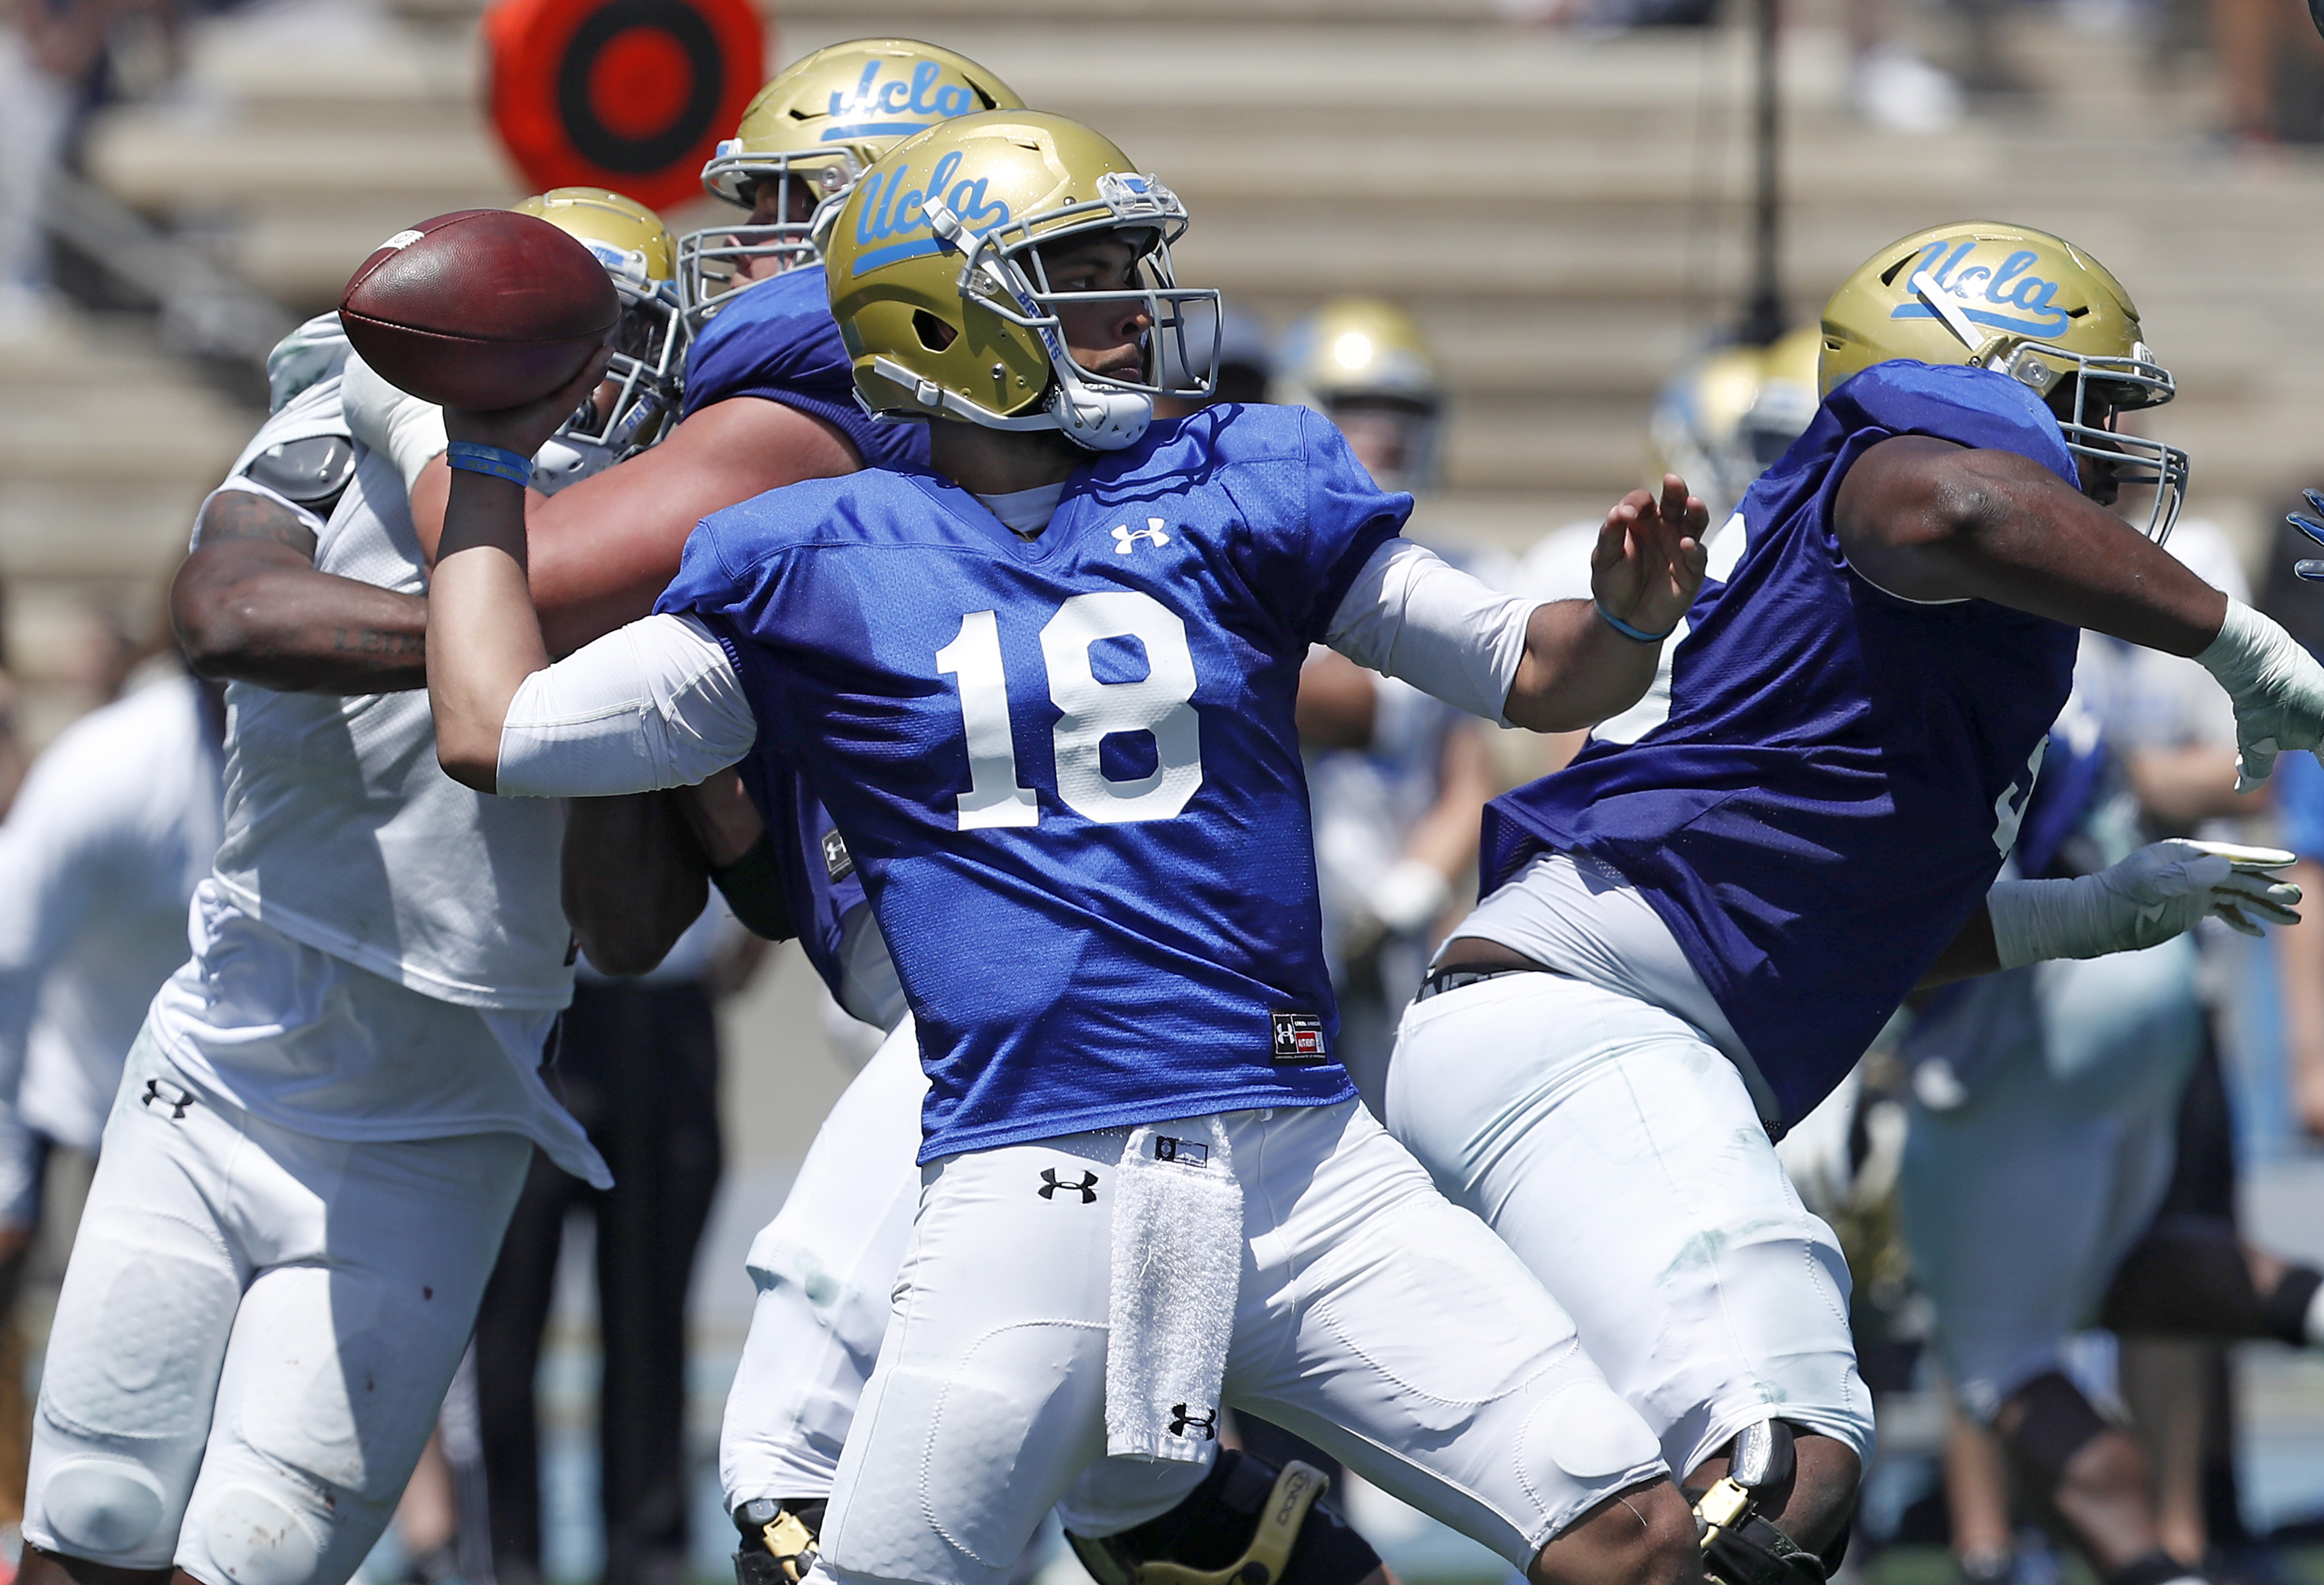 UCLA quarterback Devon Modster (18) throws downfield during the Bruins' spring football game at Drake Stadium in Los Angeles on Saturday, April 21, 2018. (Luis Sinco/Los Angeles Times/TNS)